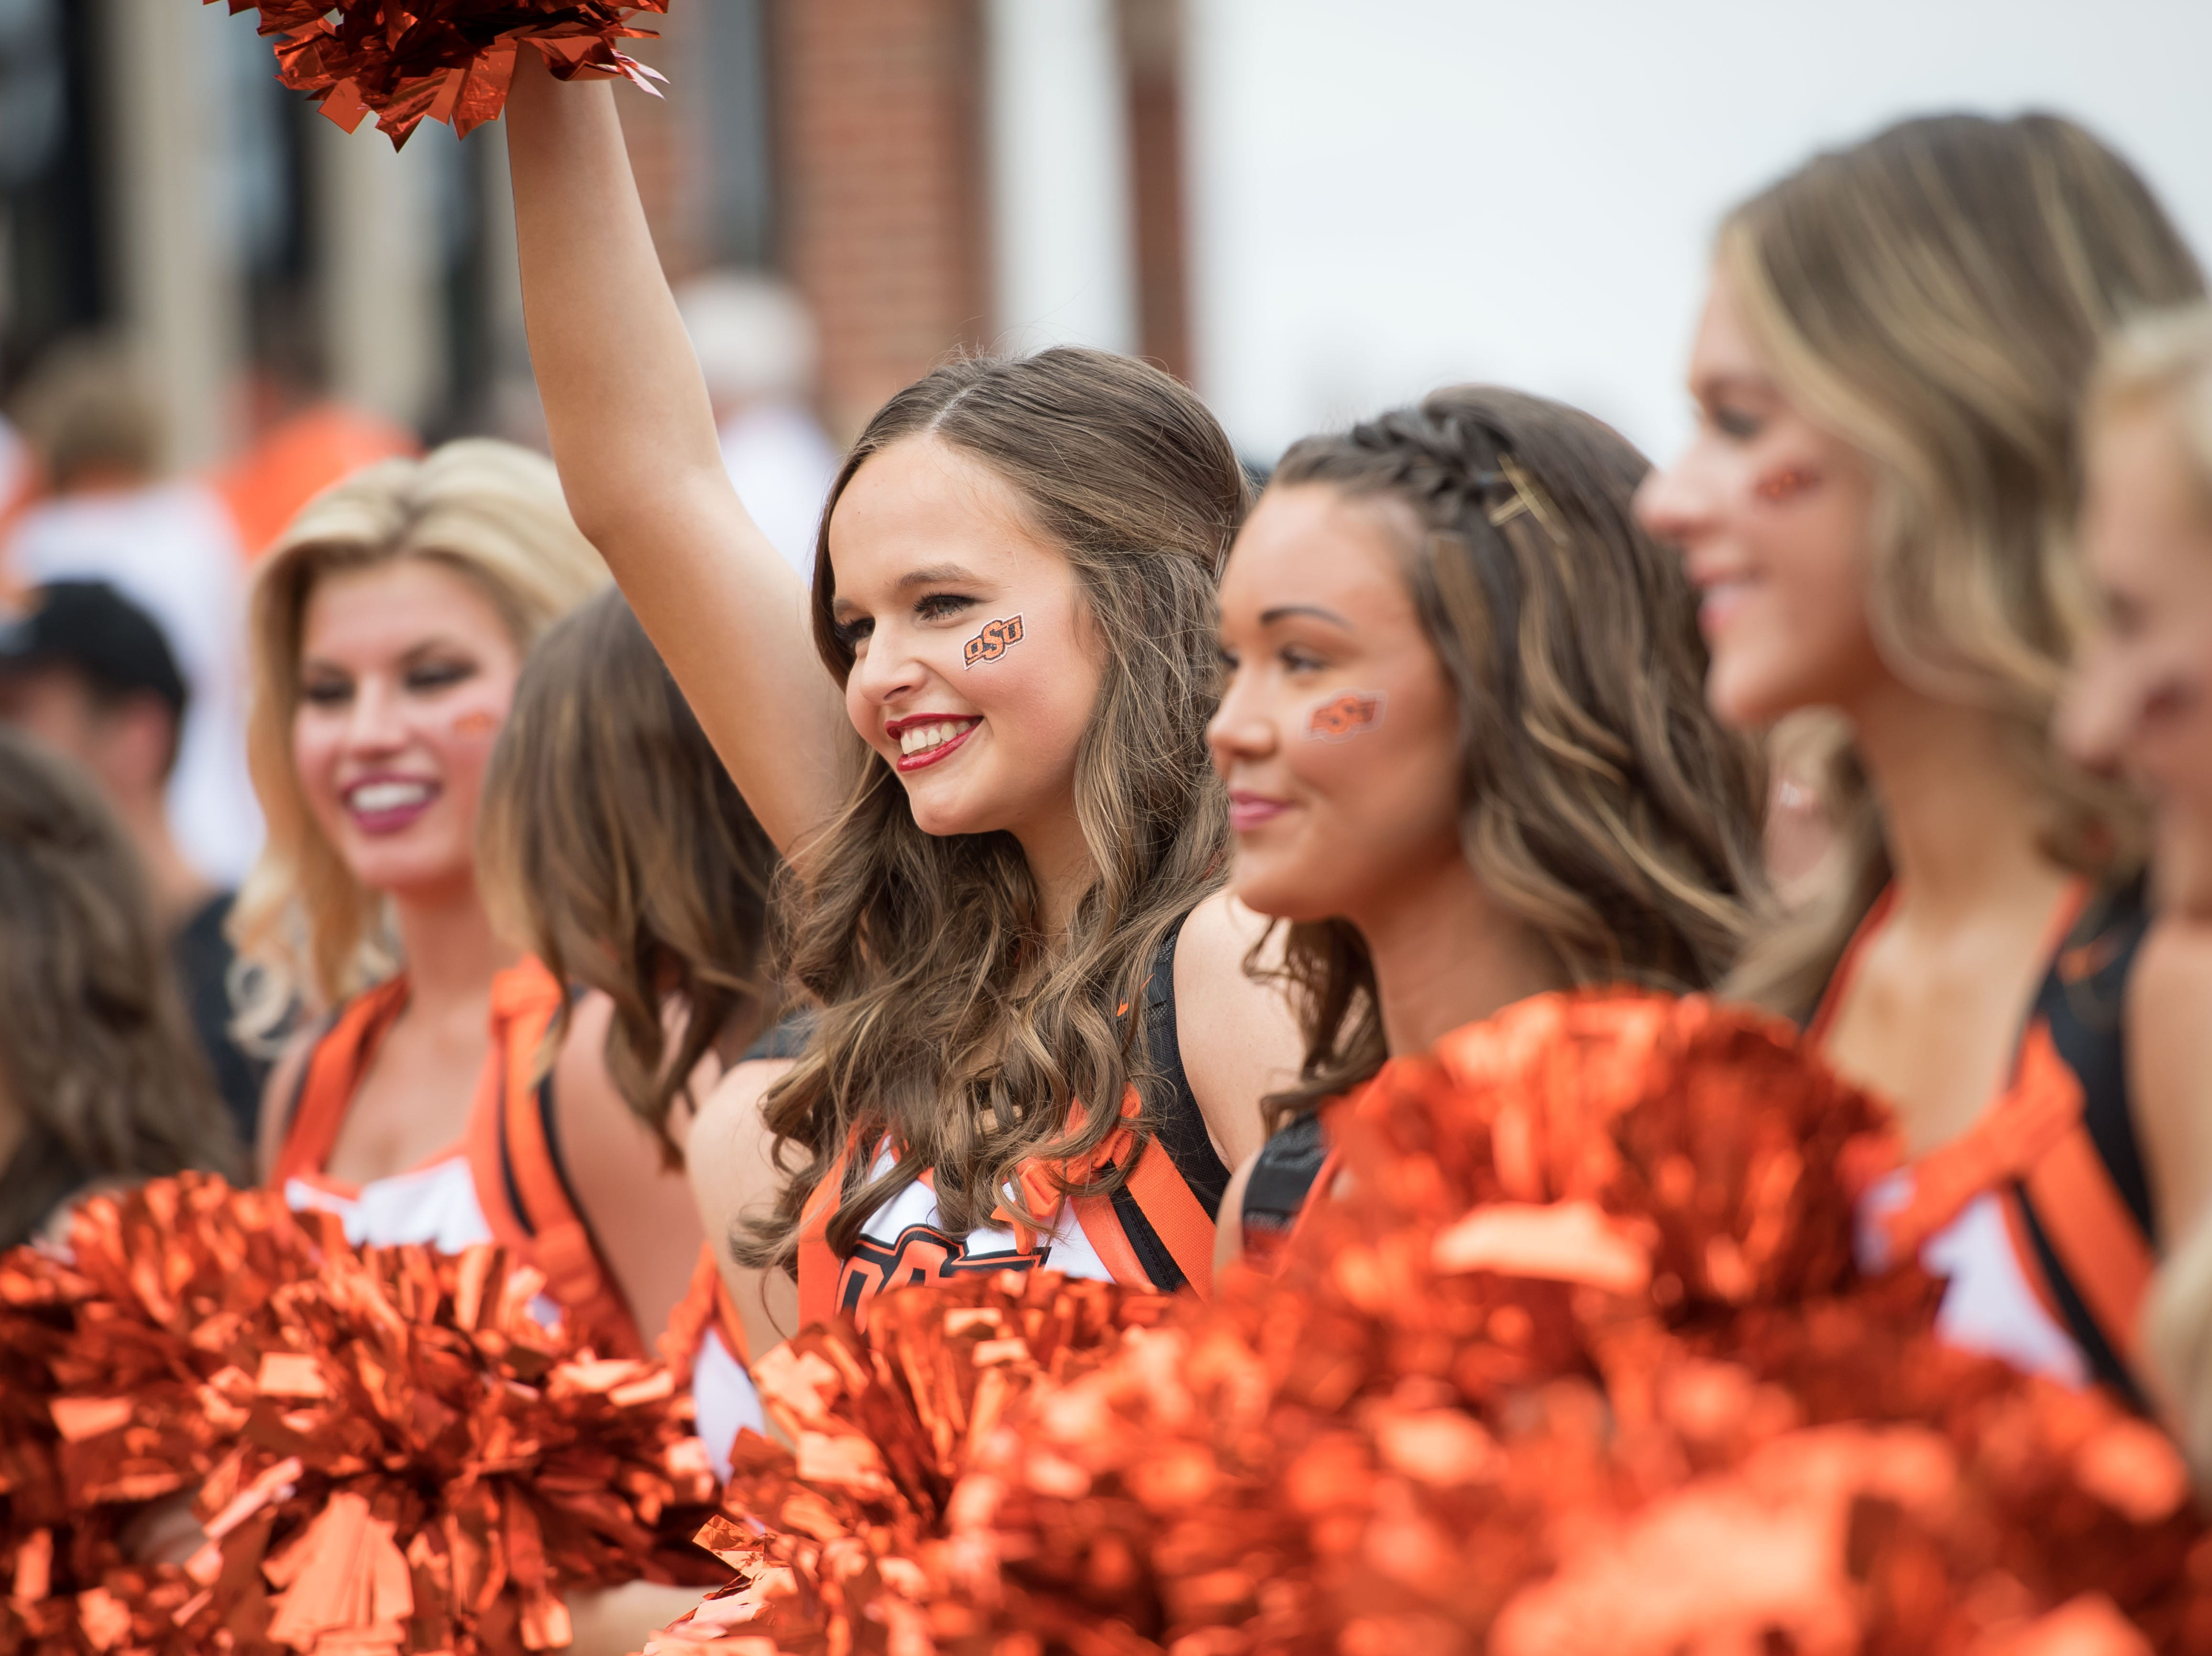 Week 3: The Oklahoma State Cowboys pom squad during The Walk before the game against the Boise State Broncos at Boone Pickens Stadium.